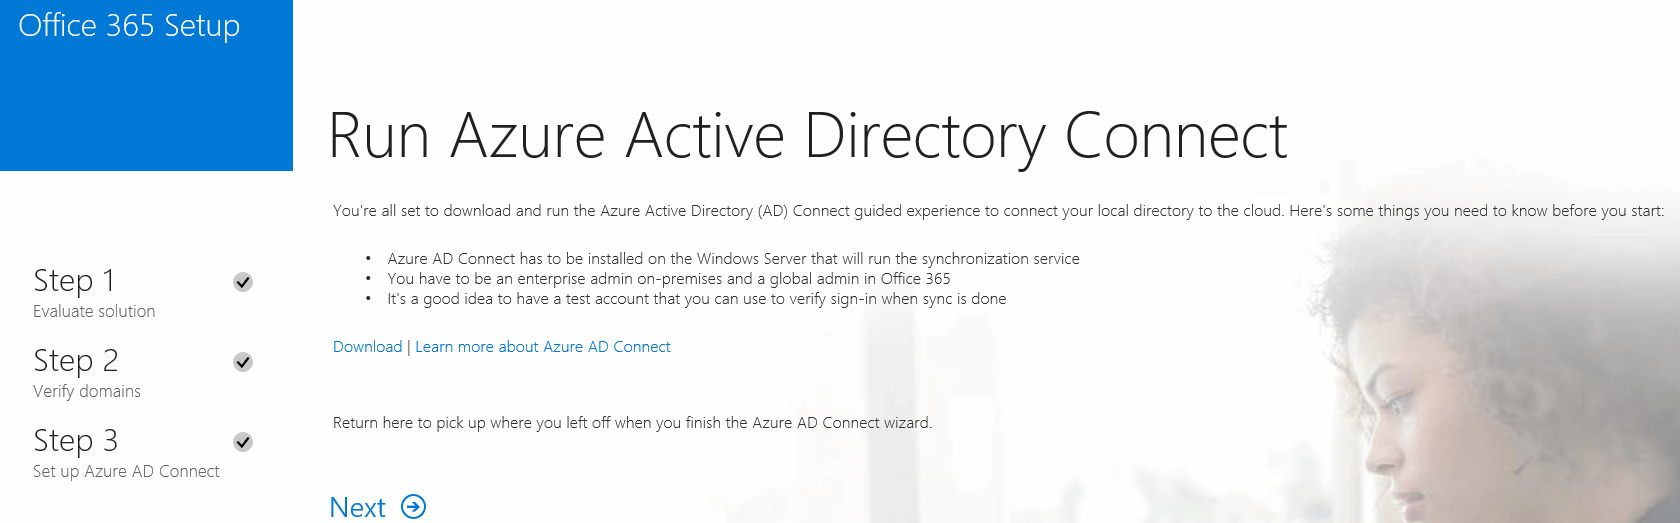 run azure active directory connect